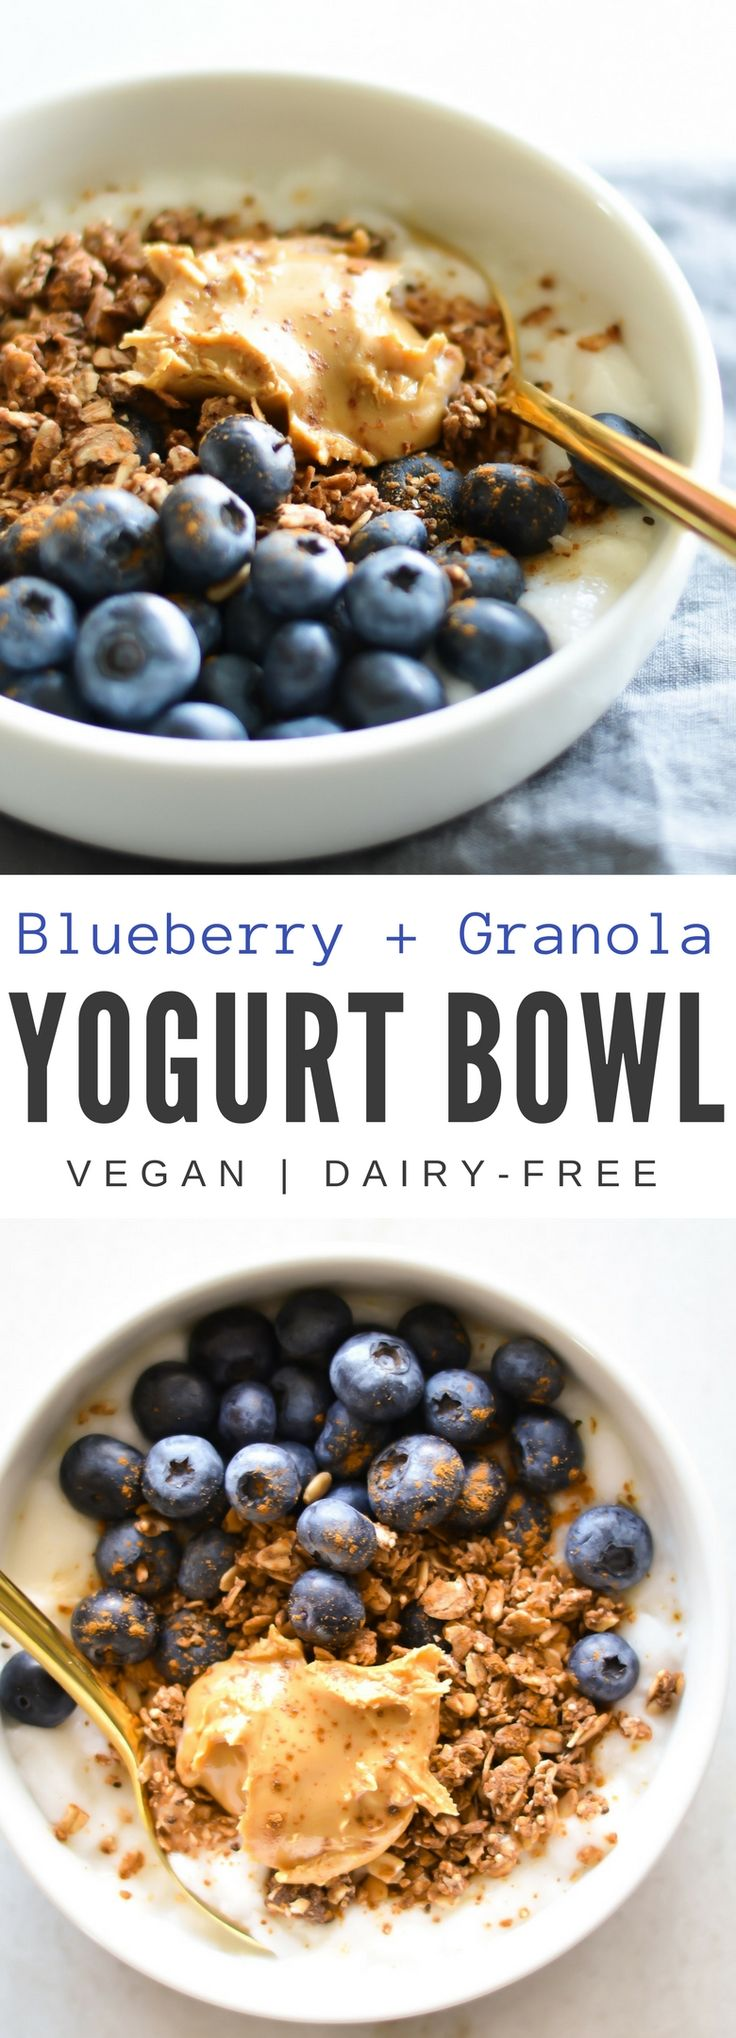 This granola and yogurt bowl is topped with fresh blueberries and almond butter. You can easily customize this quick snack or breakfast. Swap out the fruit or add additional toppings. And it only takes a few minutes to make and can easily be prepped the night before.